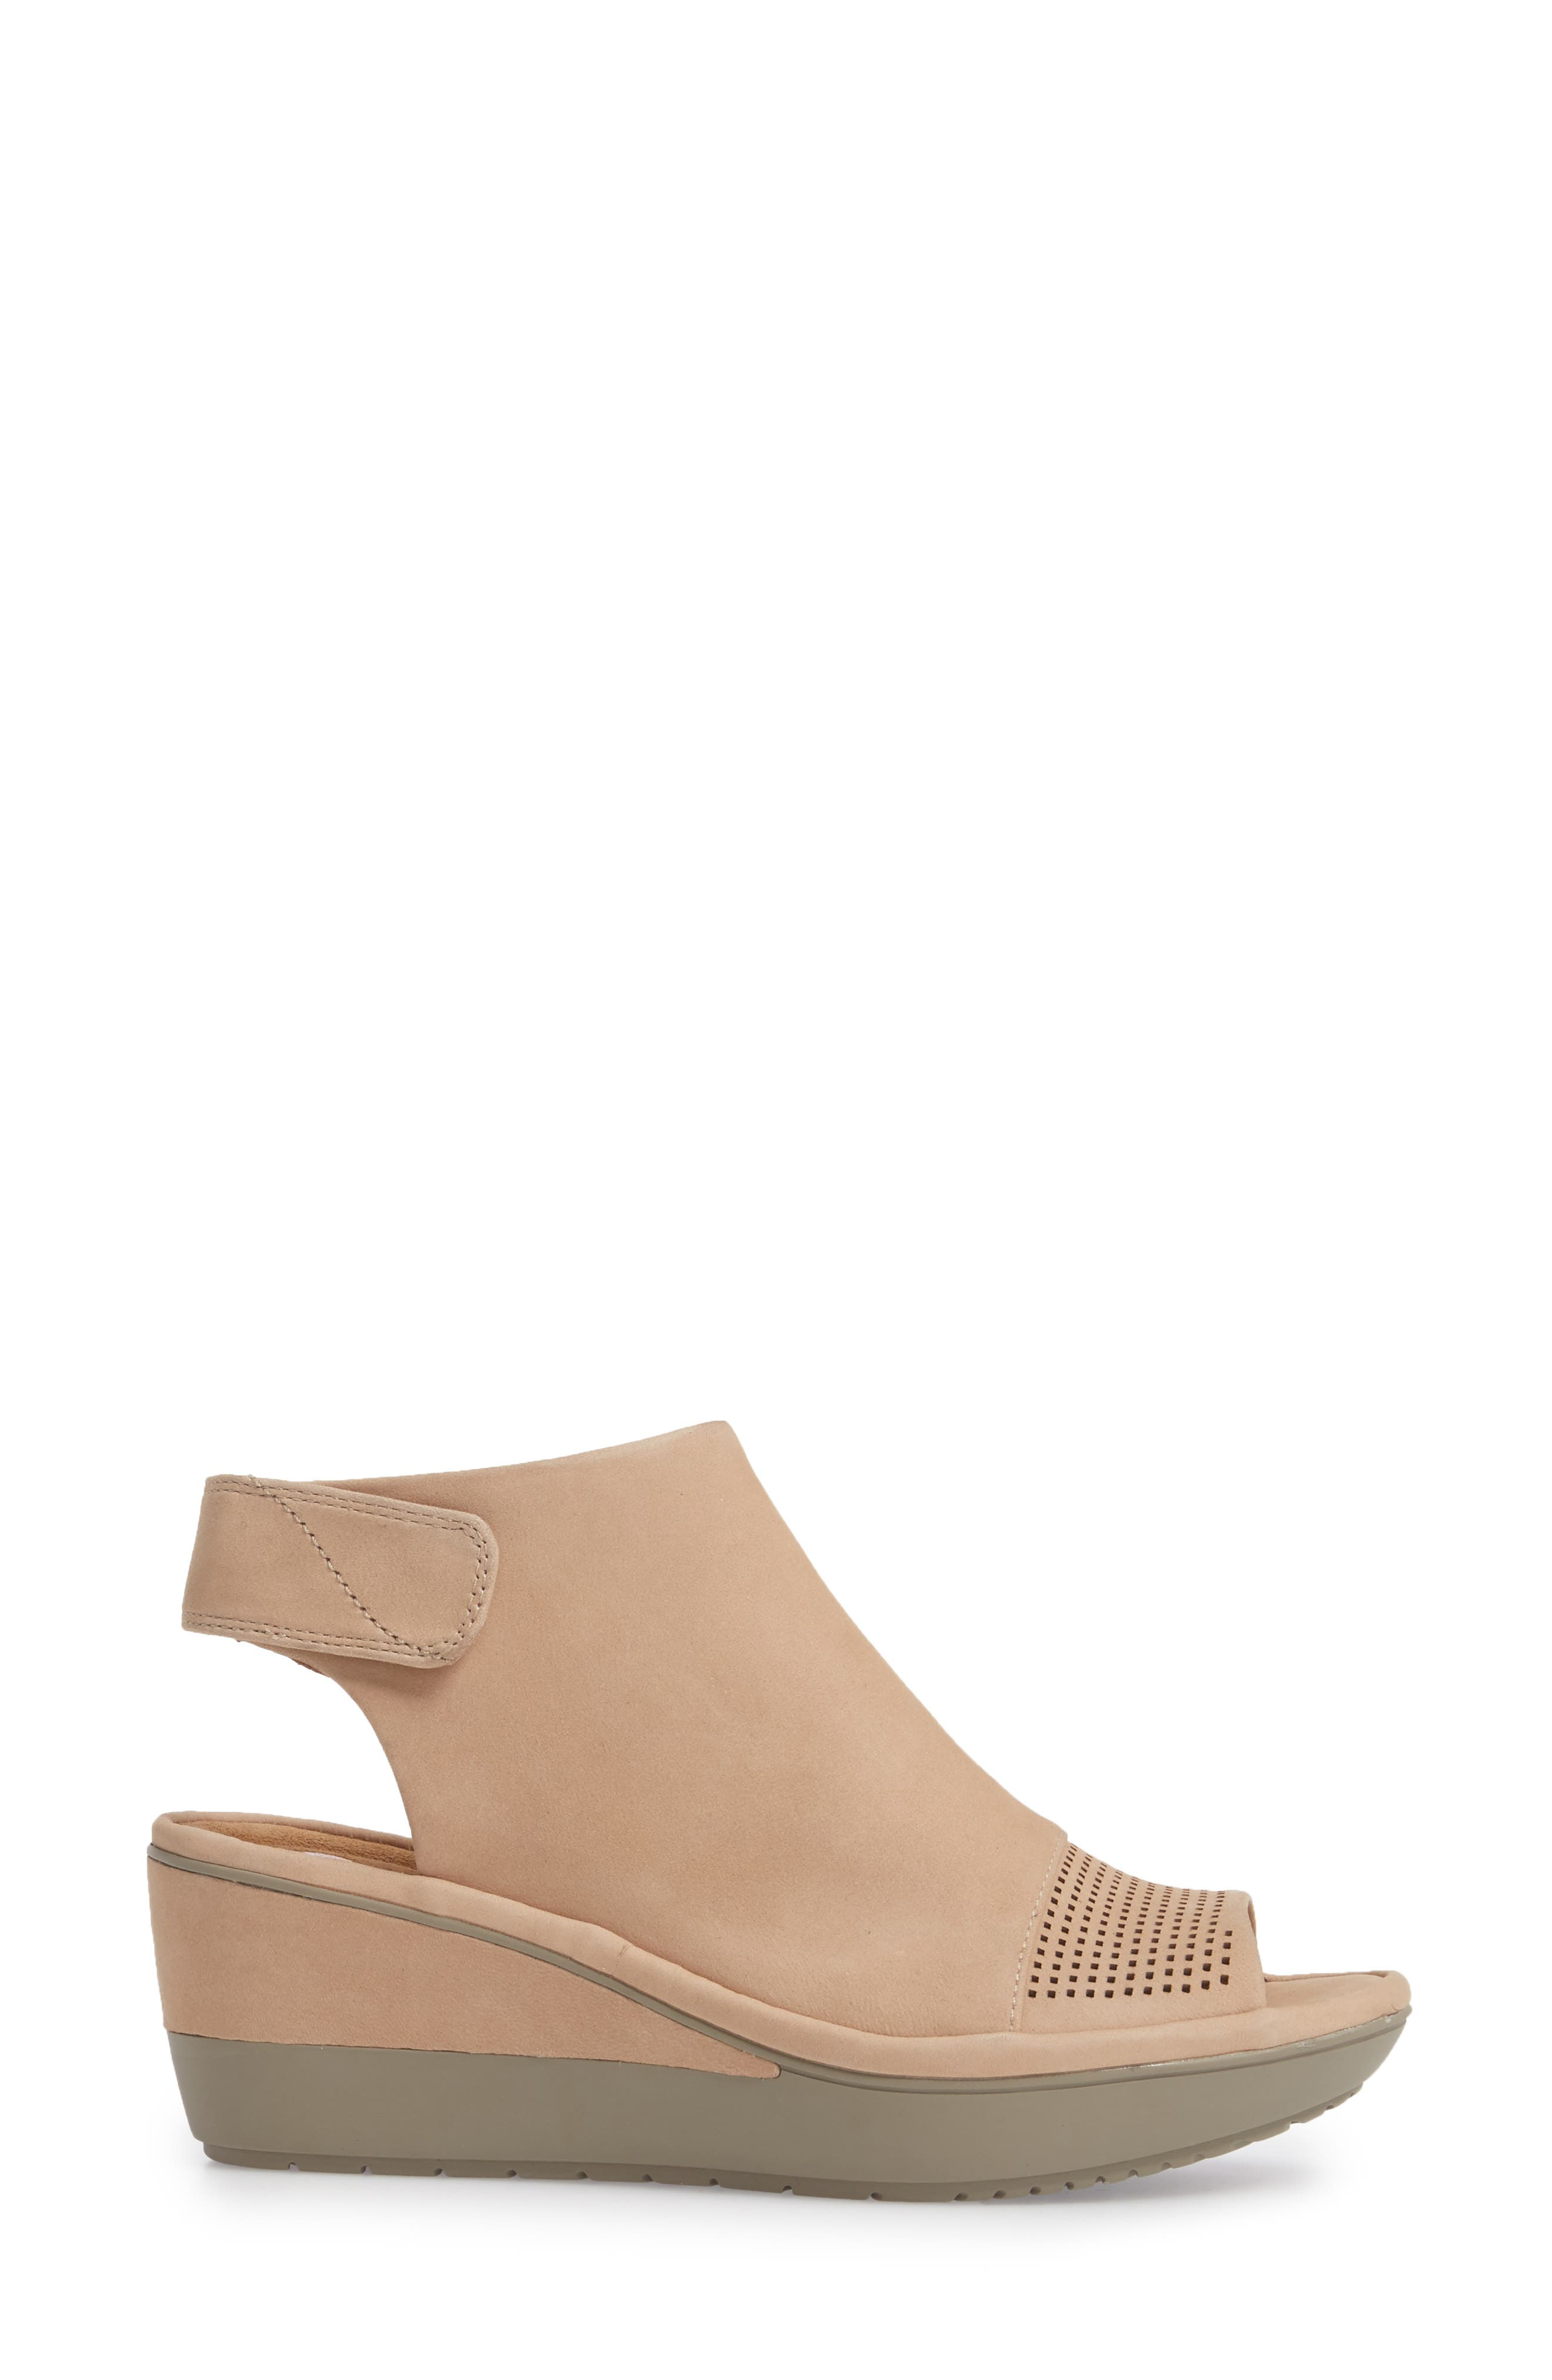 Wynnmere Abie Wedge Sandal,                             Alternate thumbnail 3, color,                             273